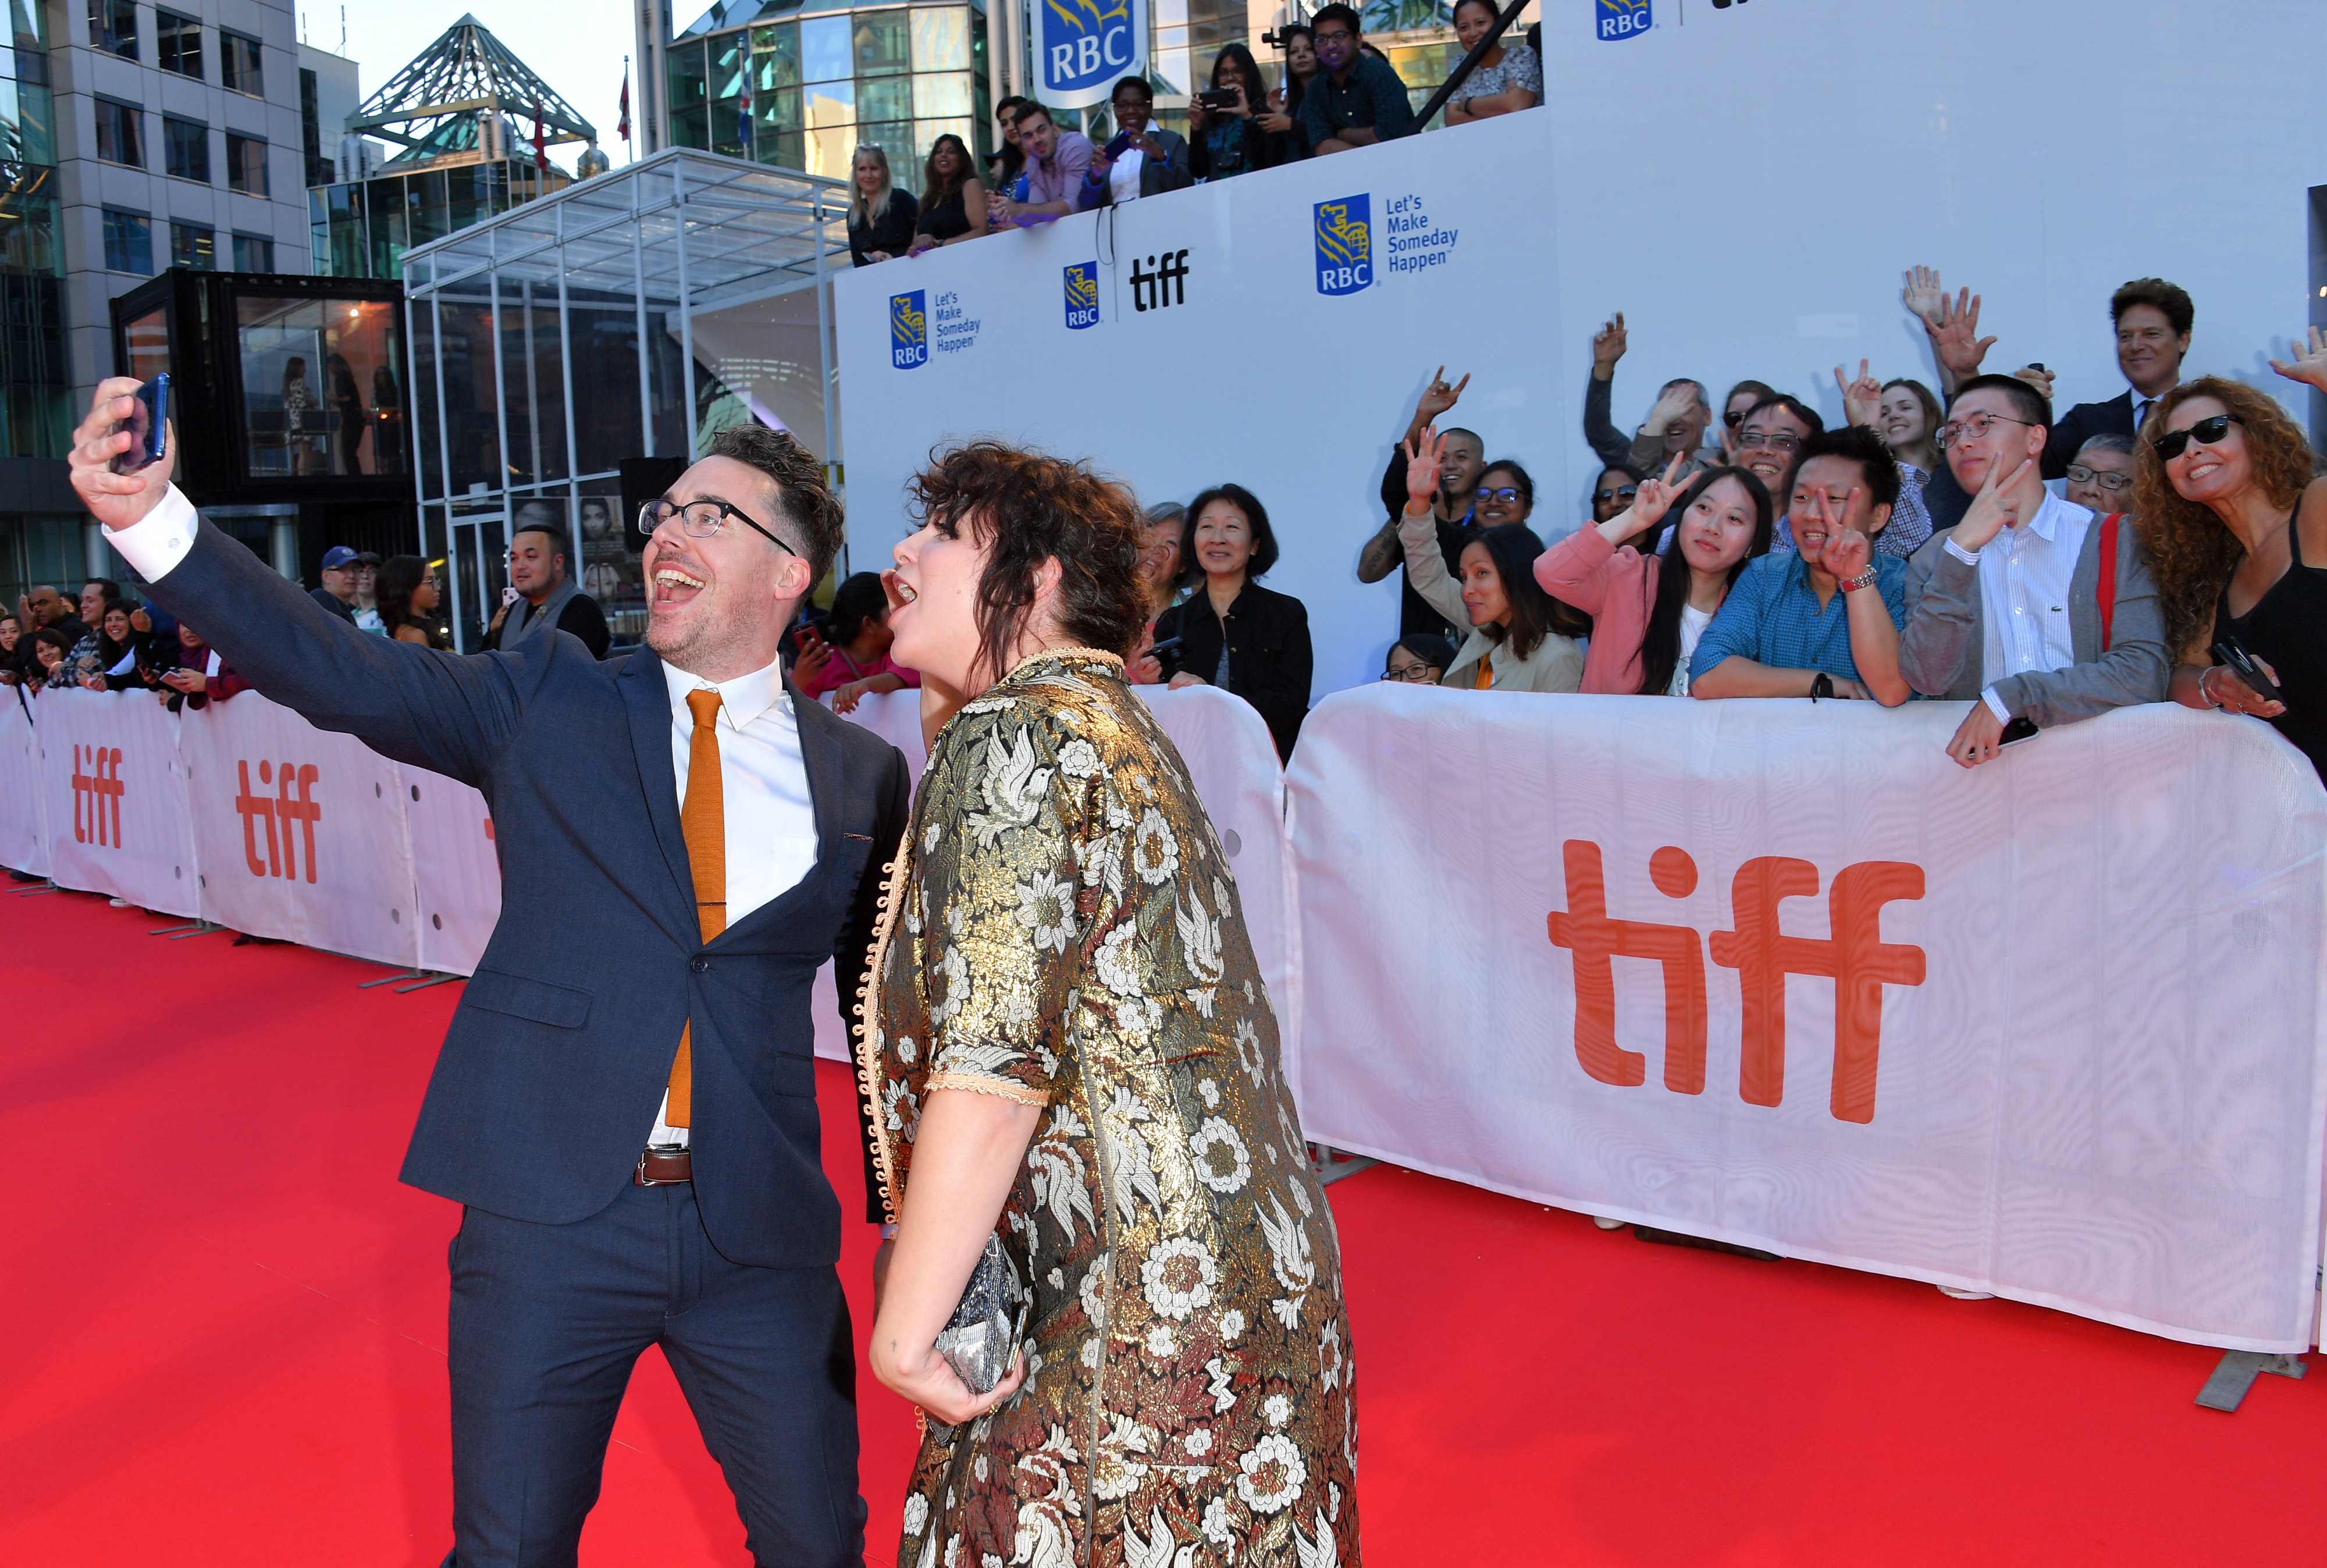 Sam Sutherland and Lana Belle Mauro at TIFF Red Carpet